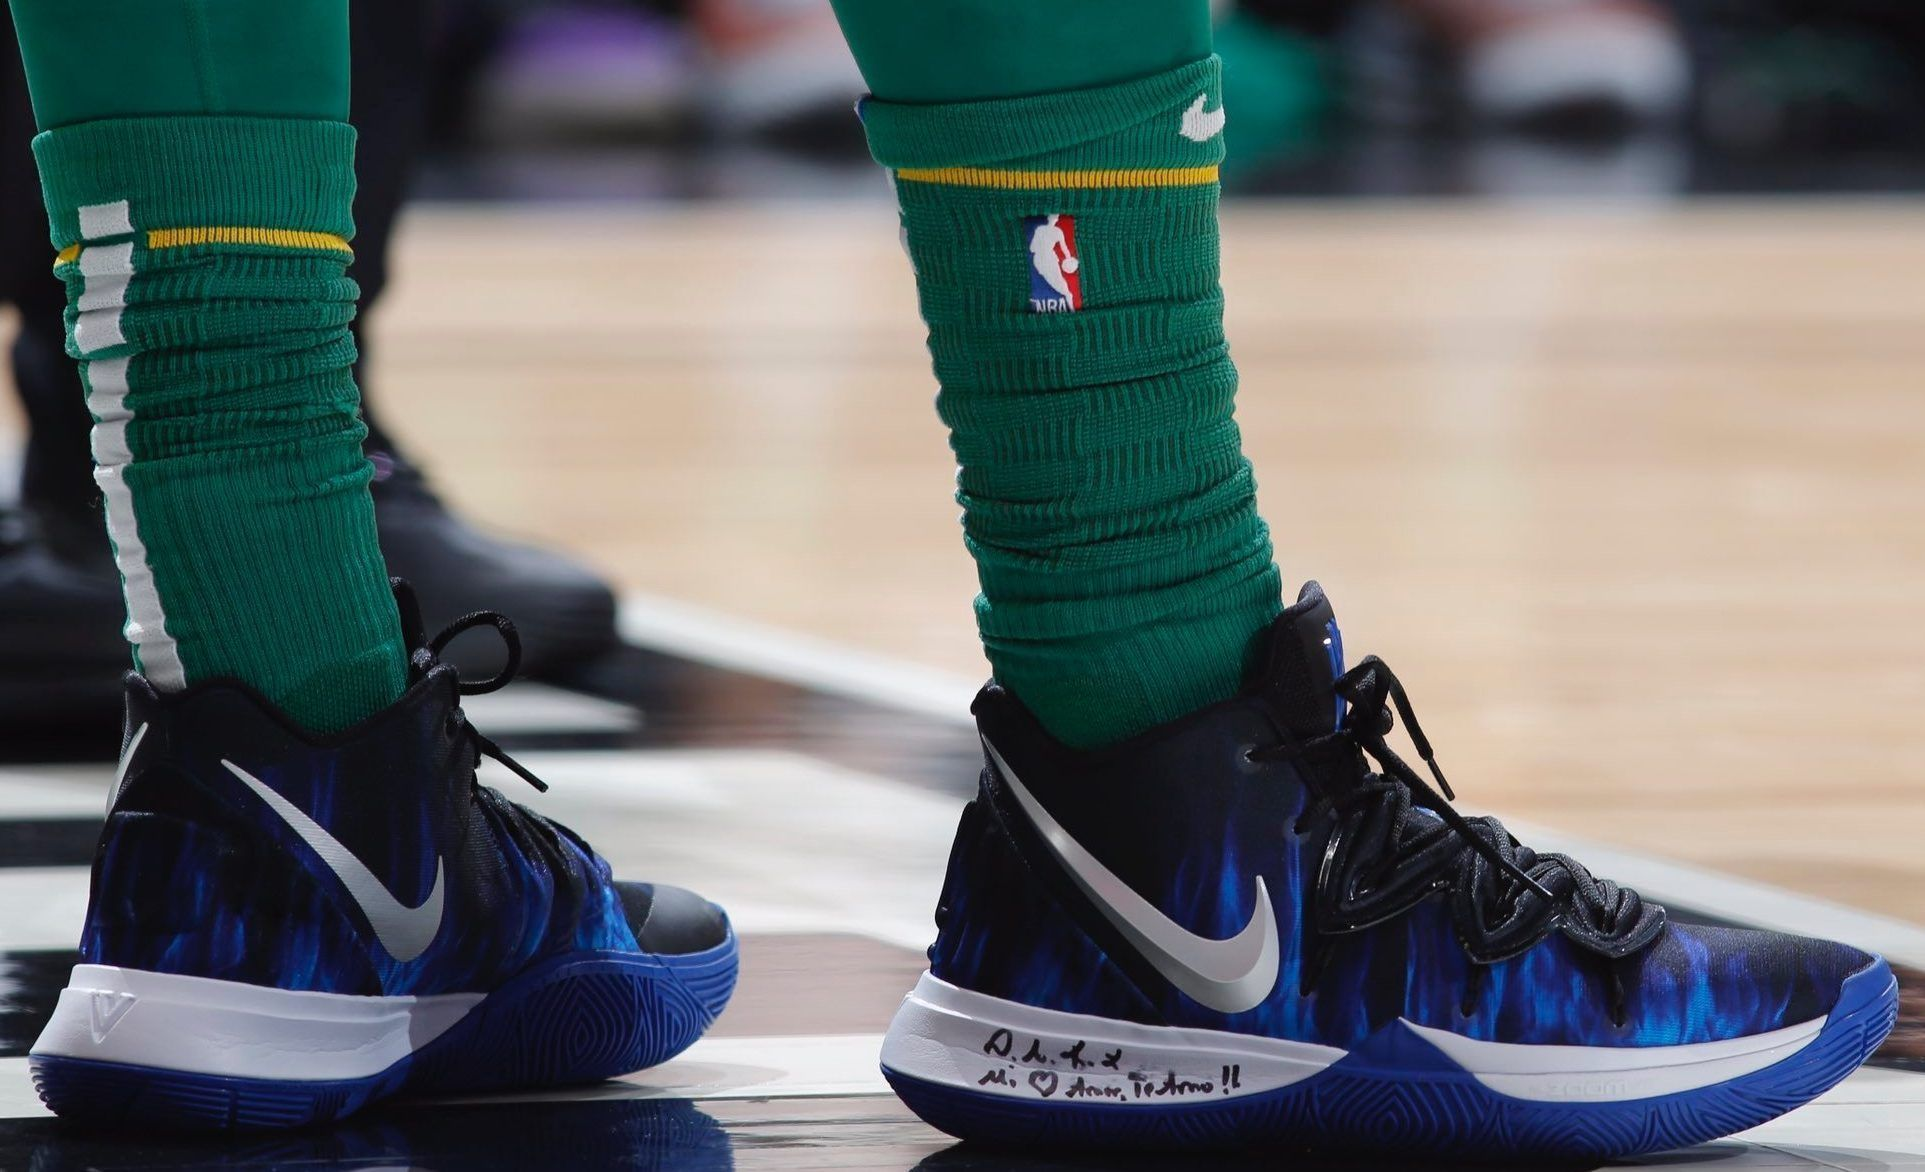 b0060b48227fe Every Sneaker Worn By Kyrie Irving This Season